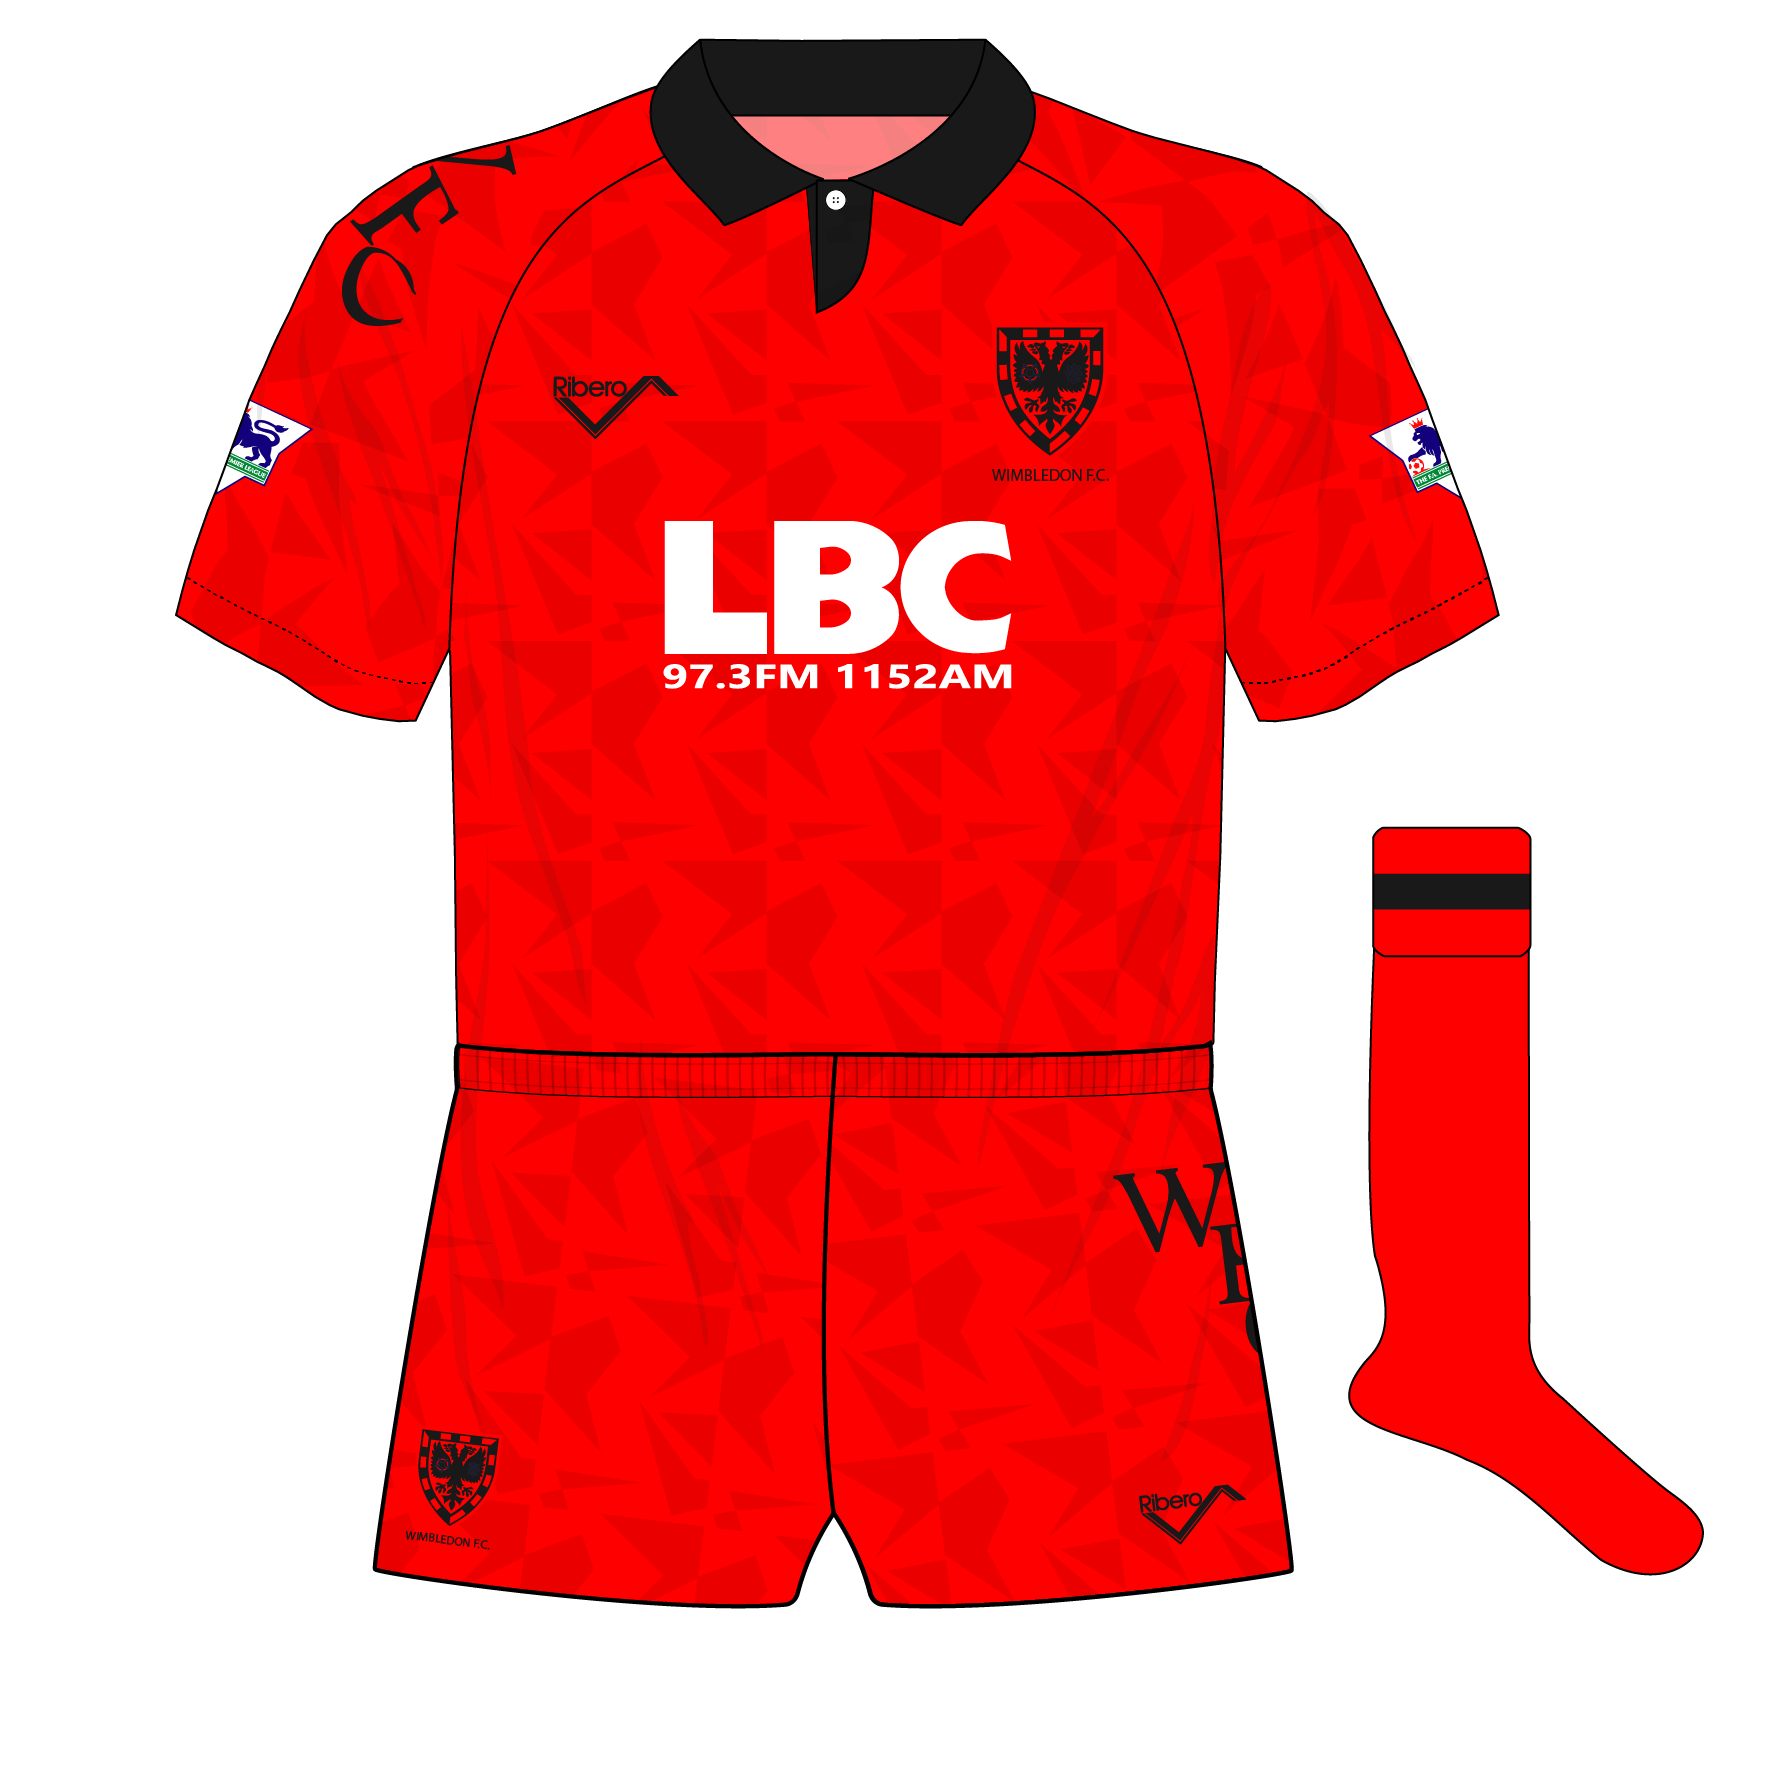 Wimbledon-Ribero-1993-1994-red-third-shirt-kit-LBC-01